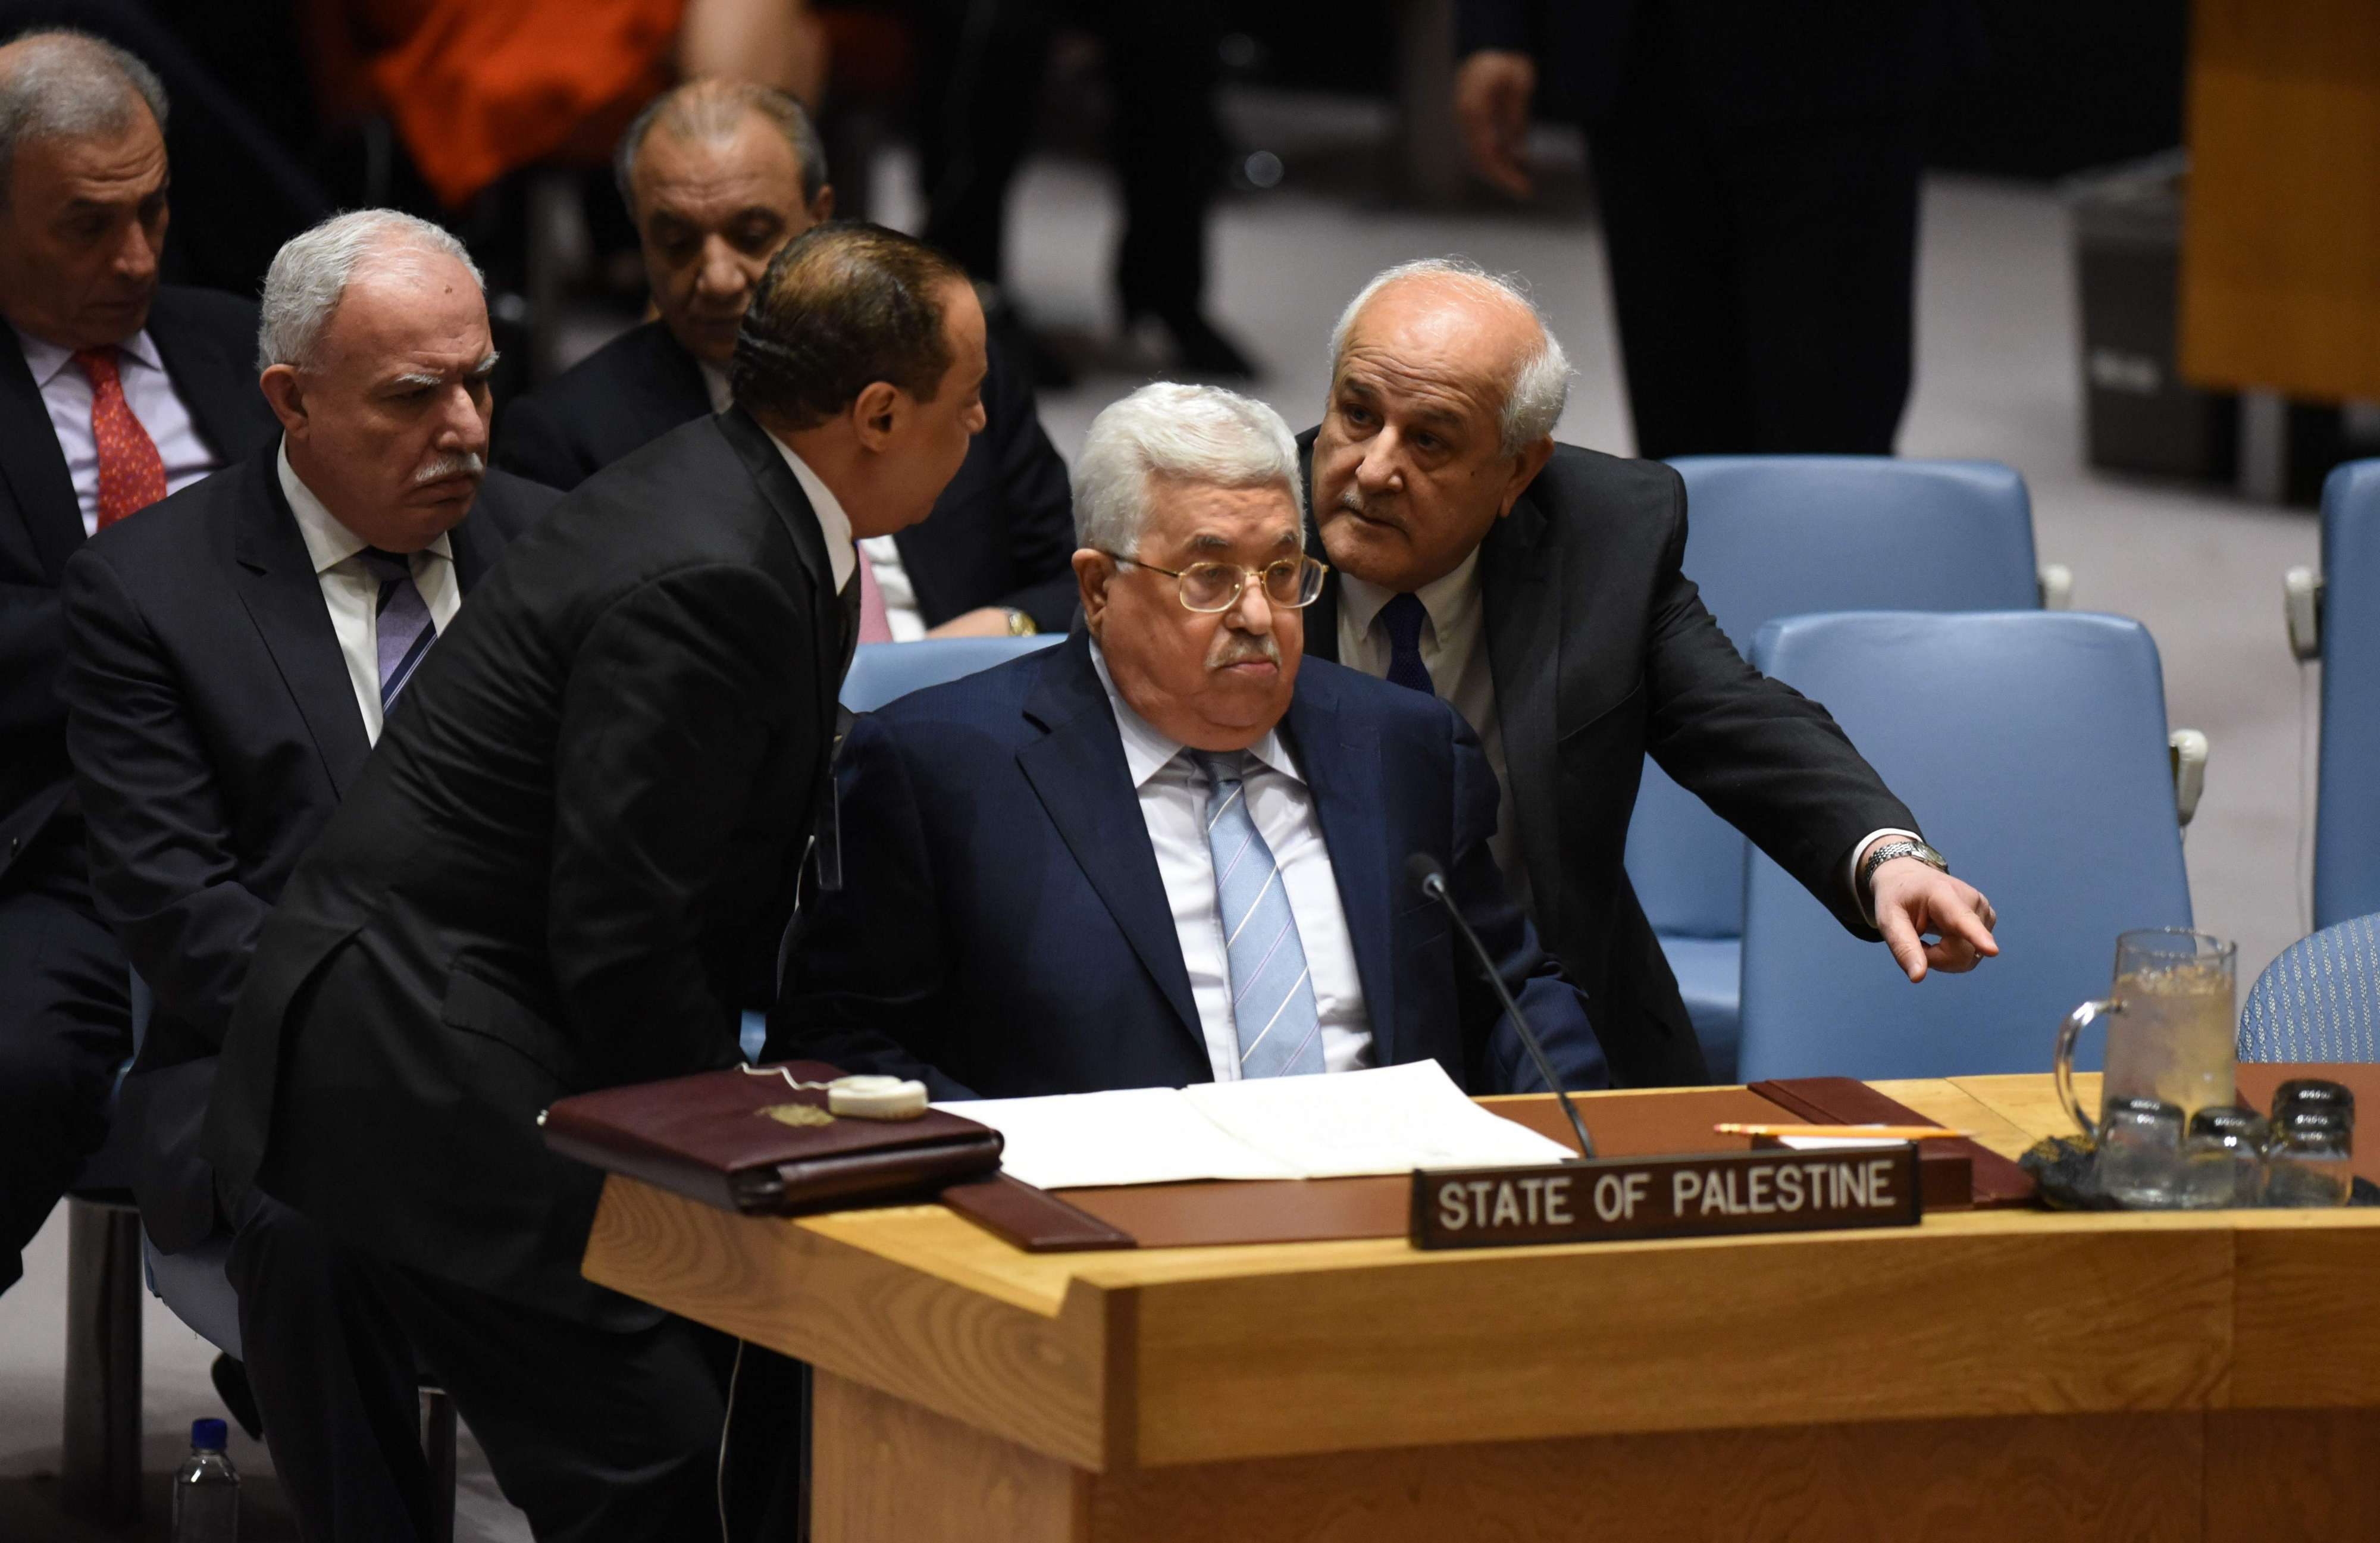 Palestinian leader Mahmud Abbas(C) attends the United Nations Security Council in New York, on February 20. (AFP)